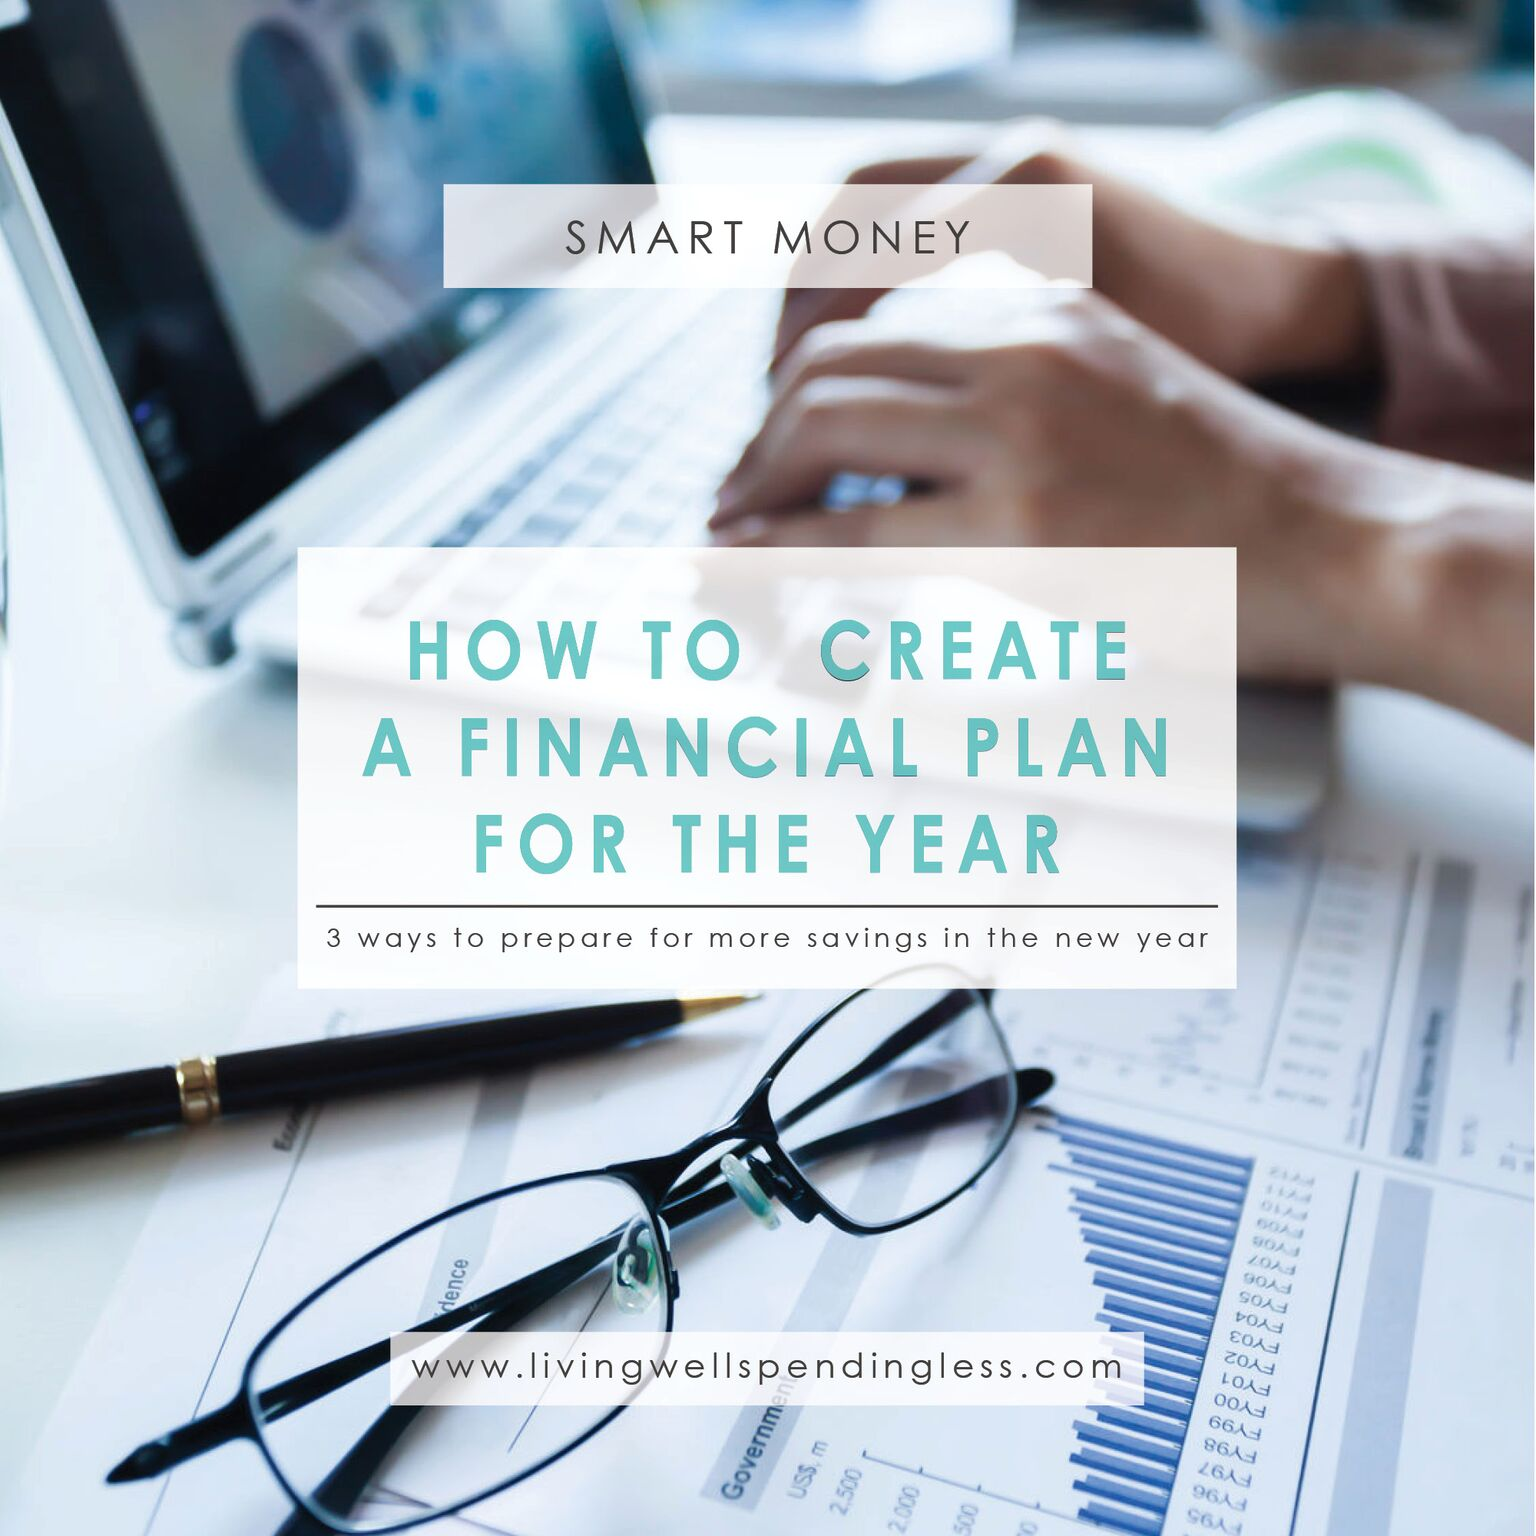 How To Create A Financial Plan For The Year